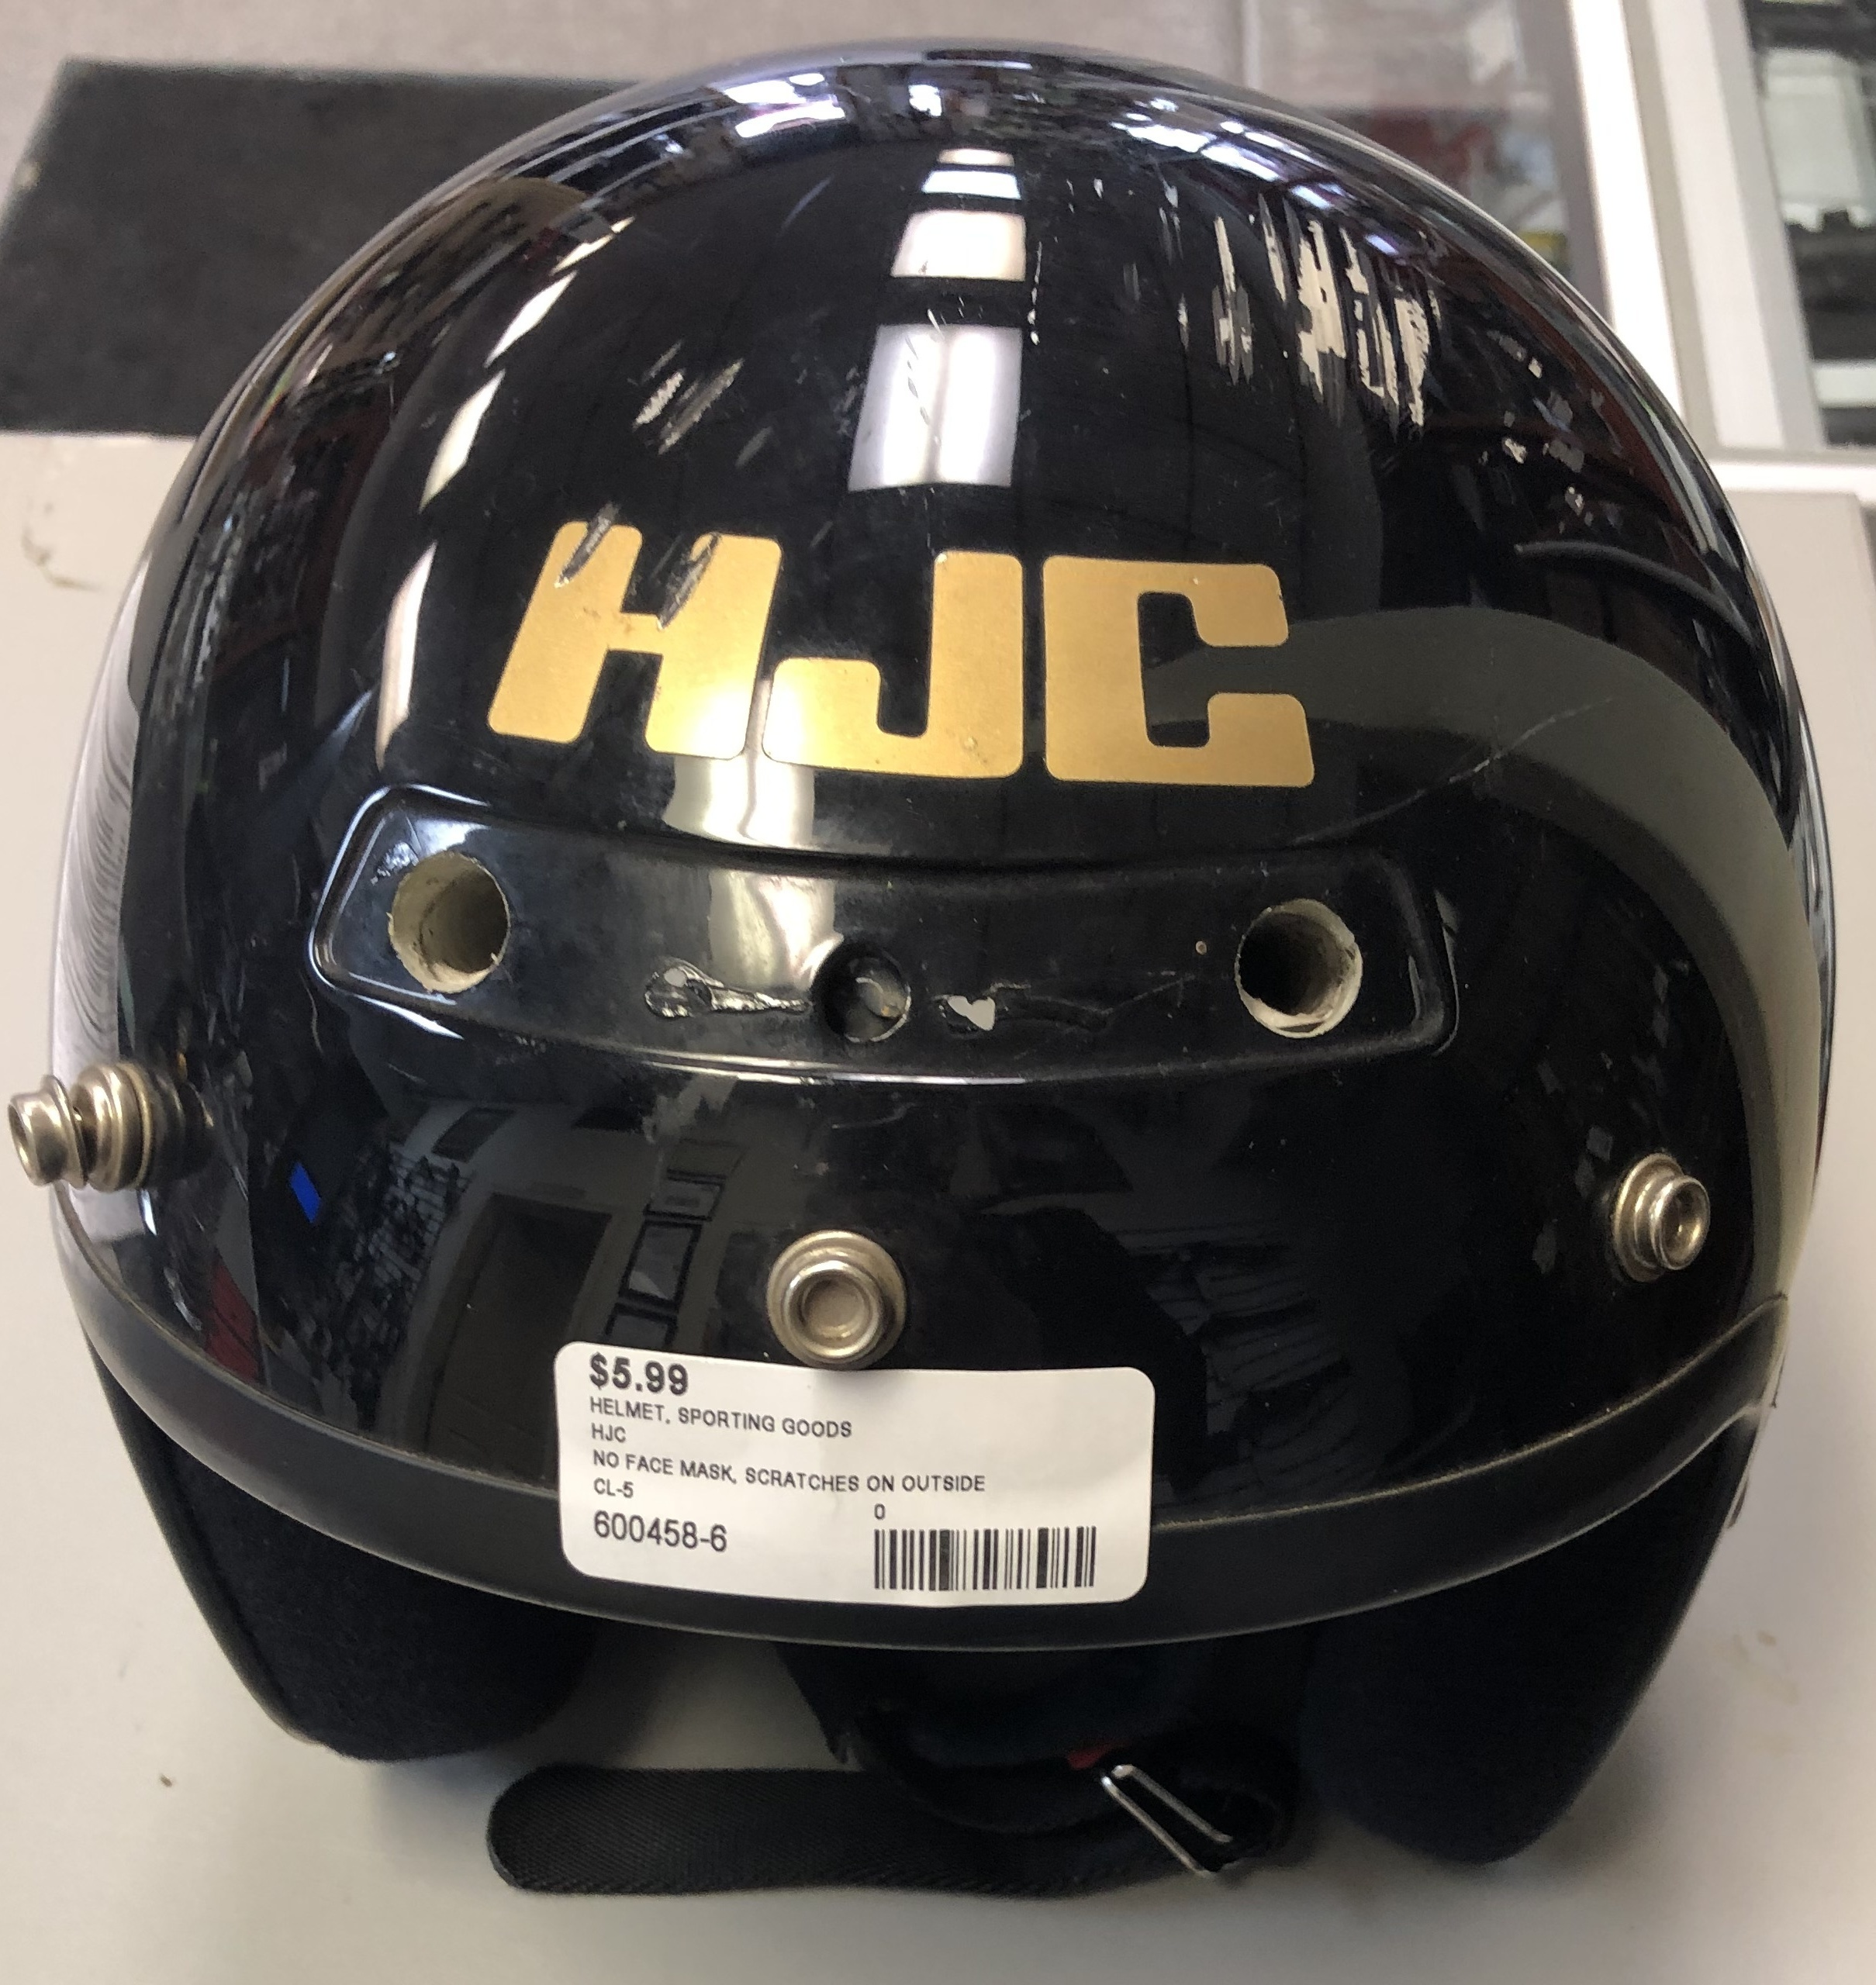 HJC - CL-5 - HELMET SPORTING GOODS